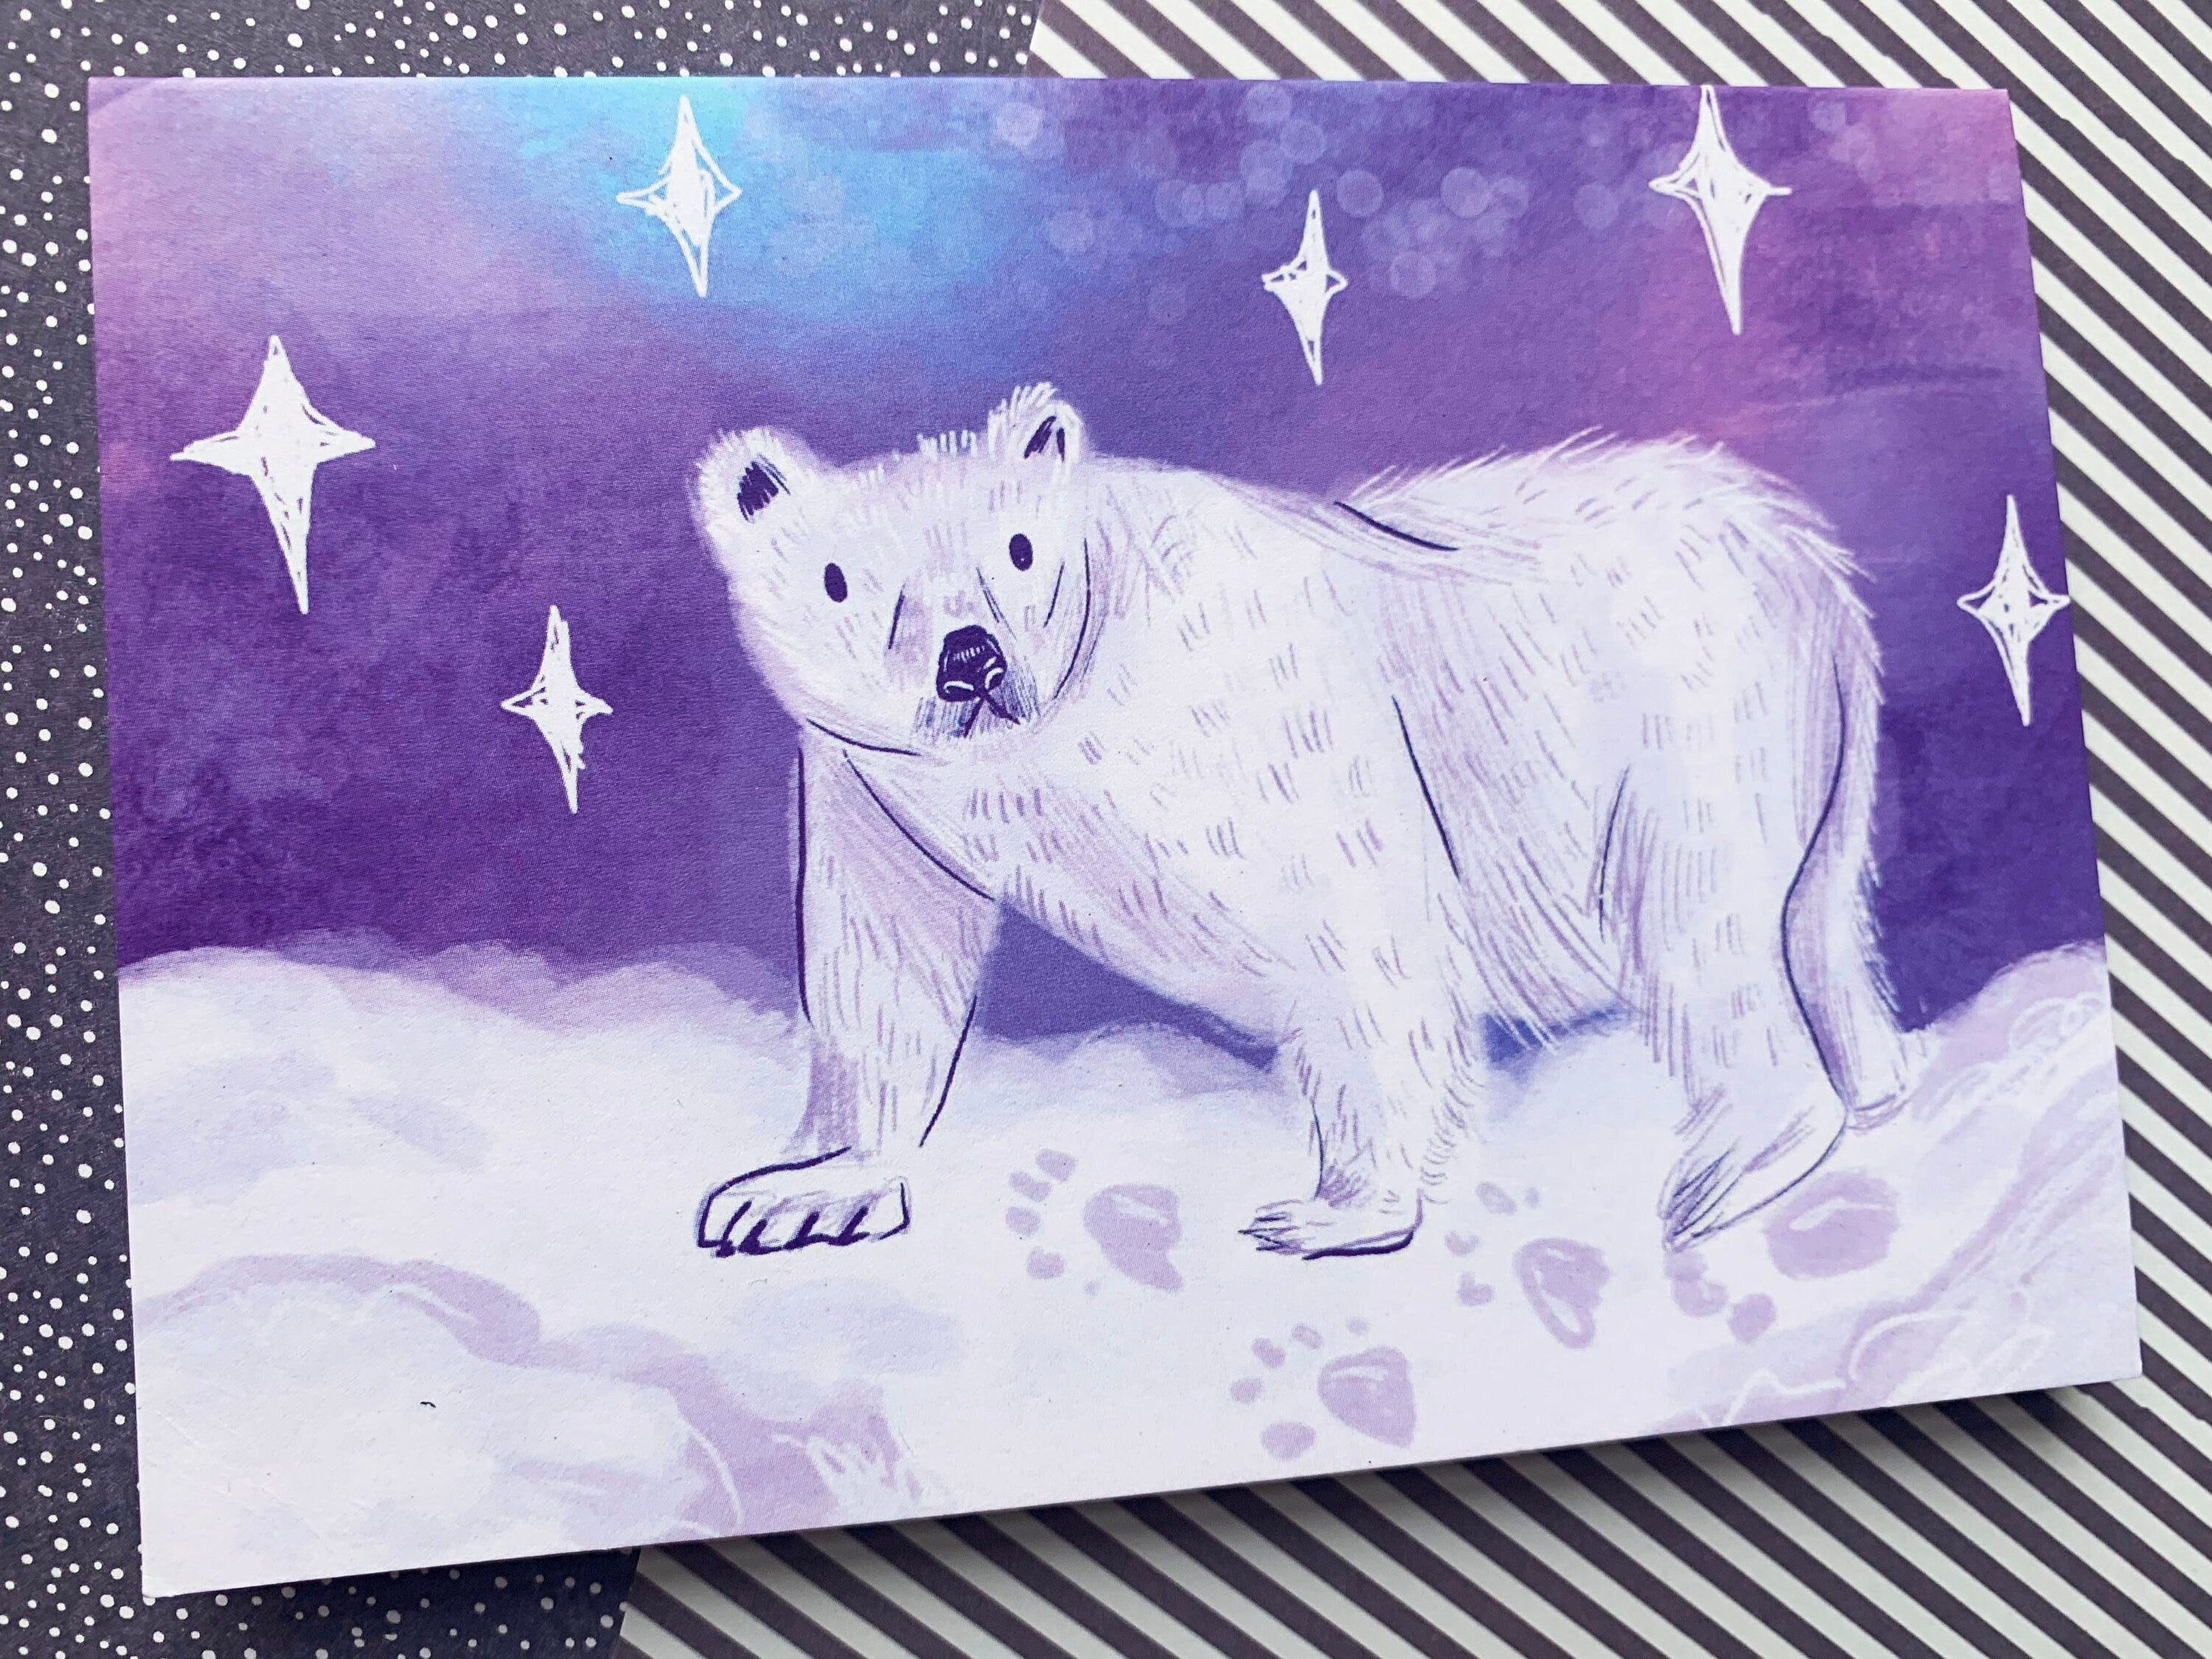 A6 greeting card. It features a digital illustration of a white polar bear walking along some snow. There is a celestial starry sky in the background.